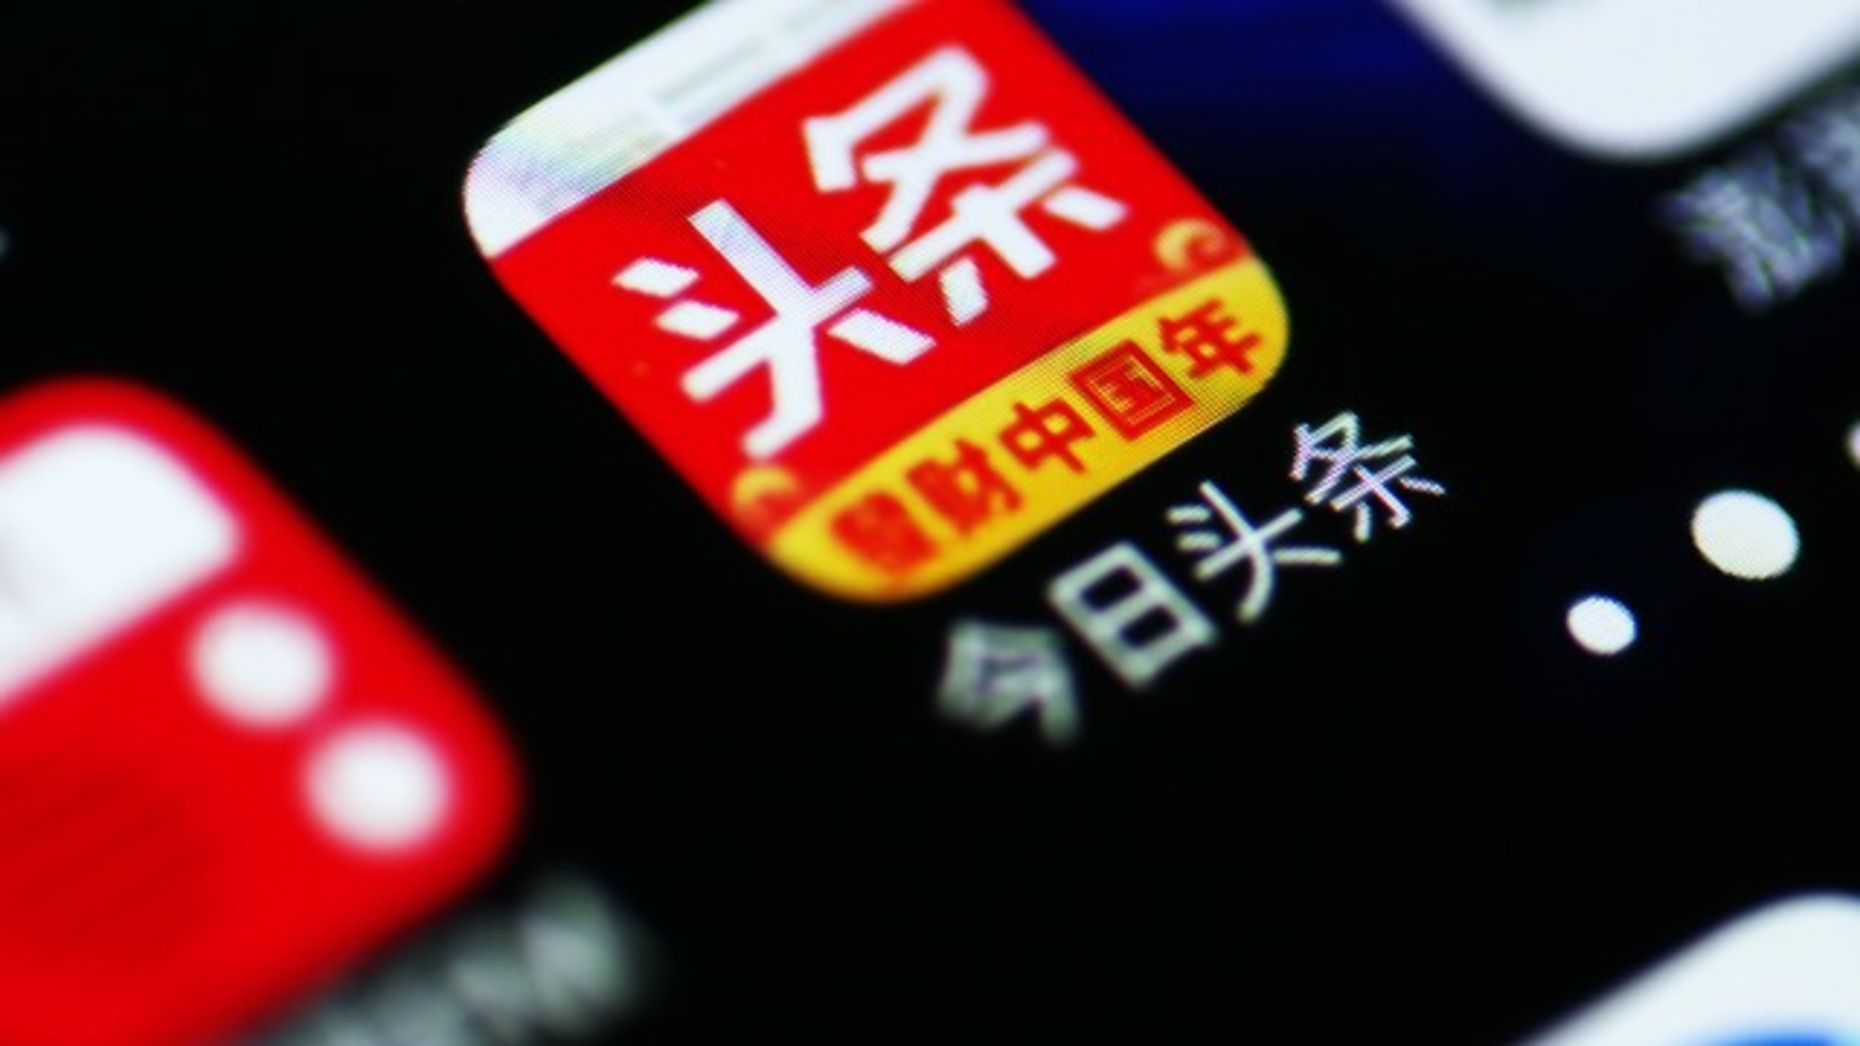 The Toutiao app icon. Photo: Imaginechina via AP